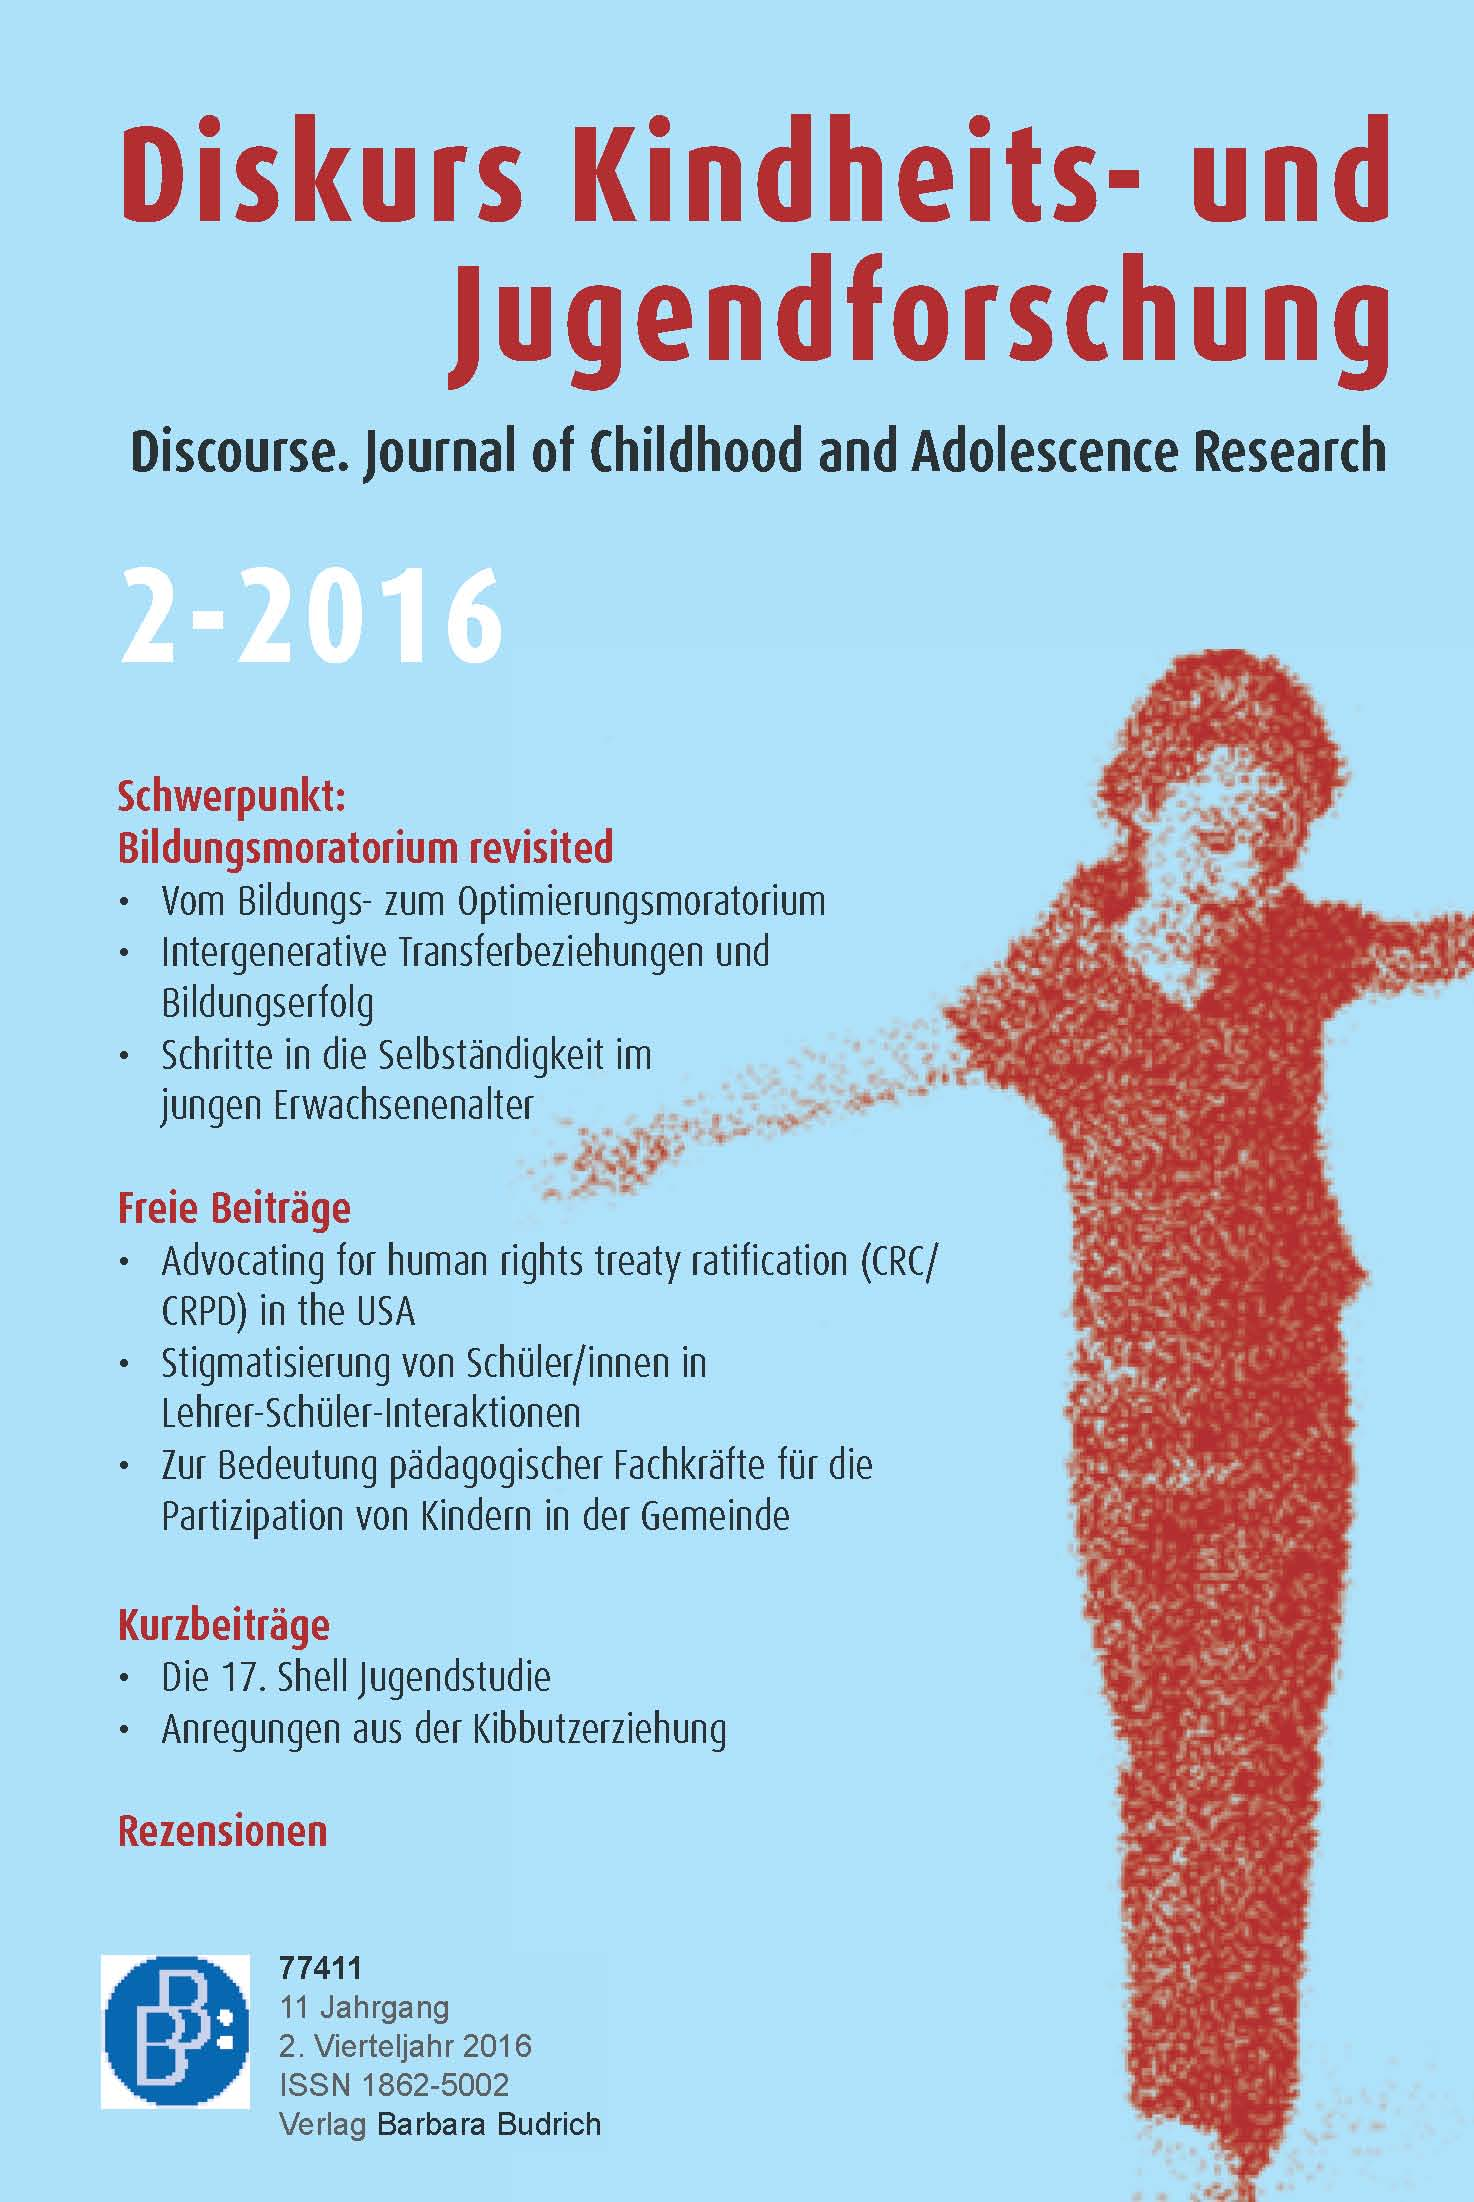 Diskurs Kindheits- und Jugendforschung / Discourse. Journal of Childhood and Adolescence Research 2-2016: Bildungsmoratorium revisited